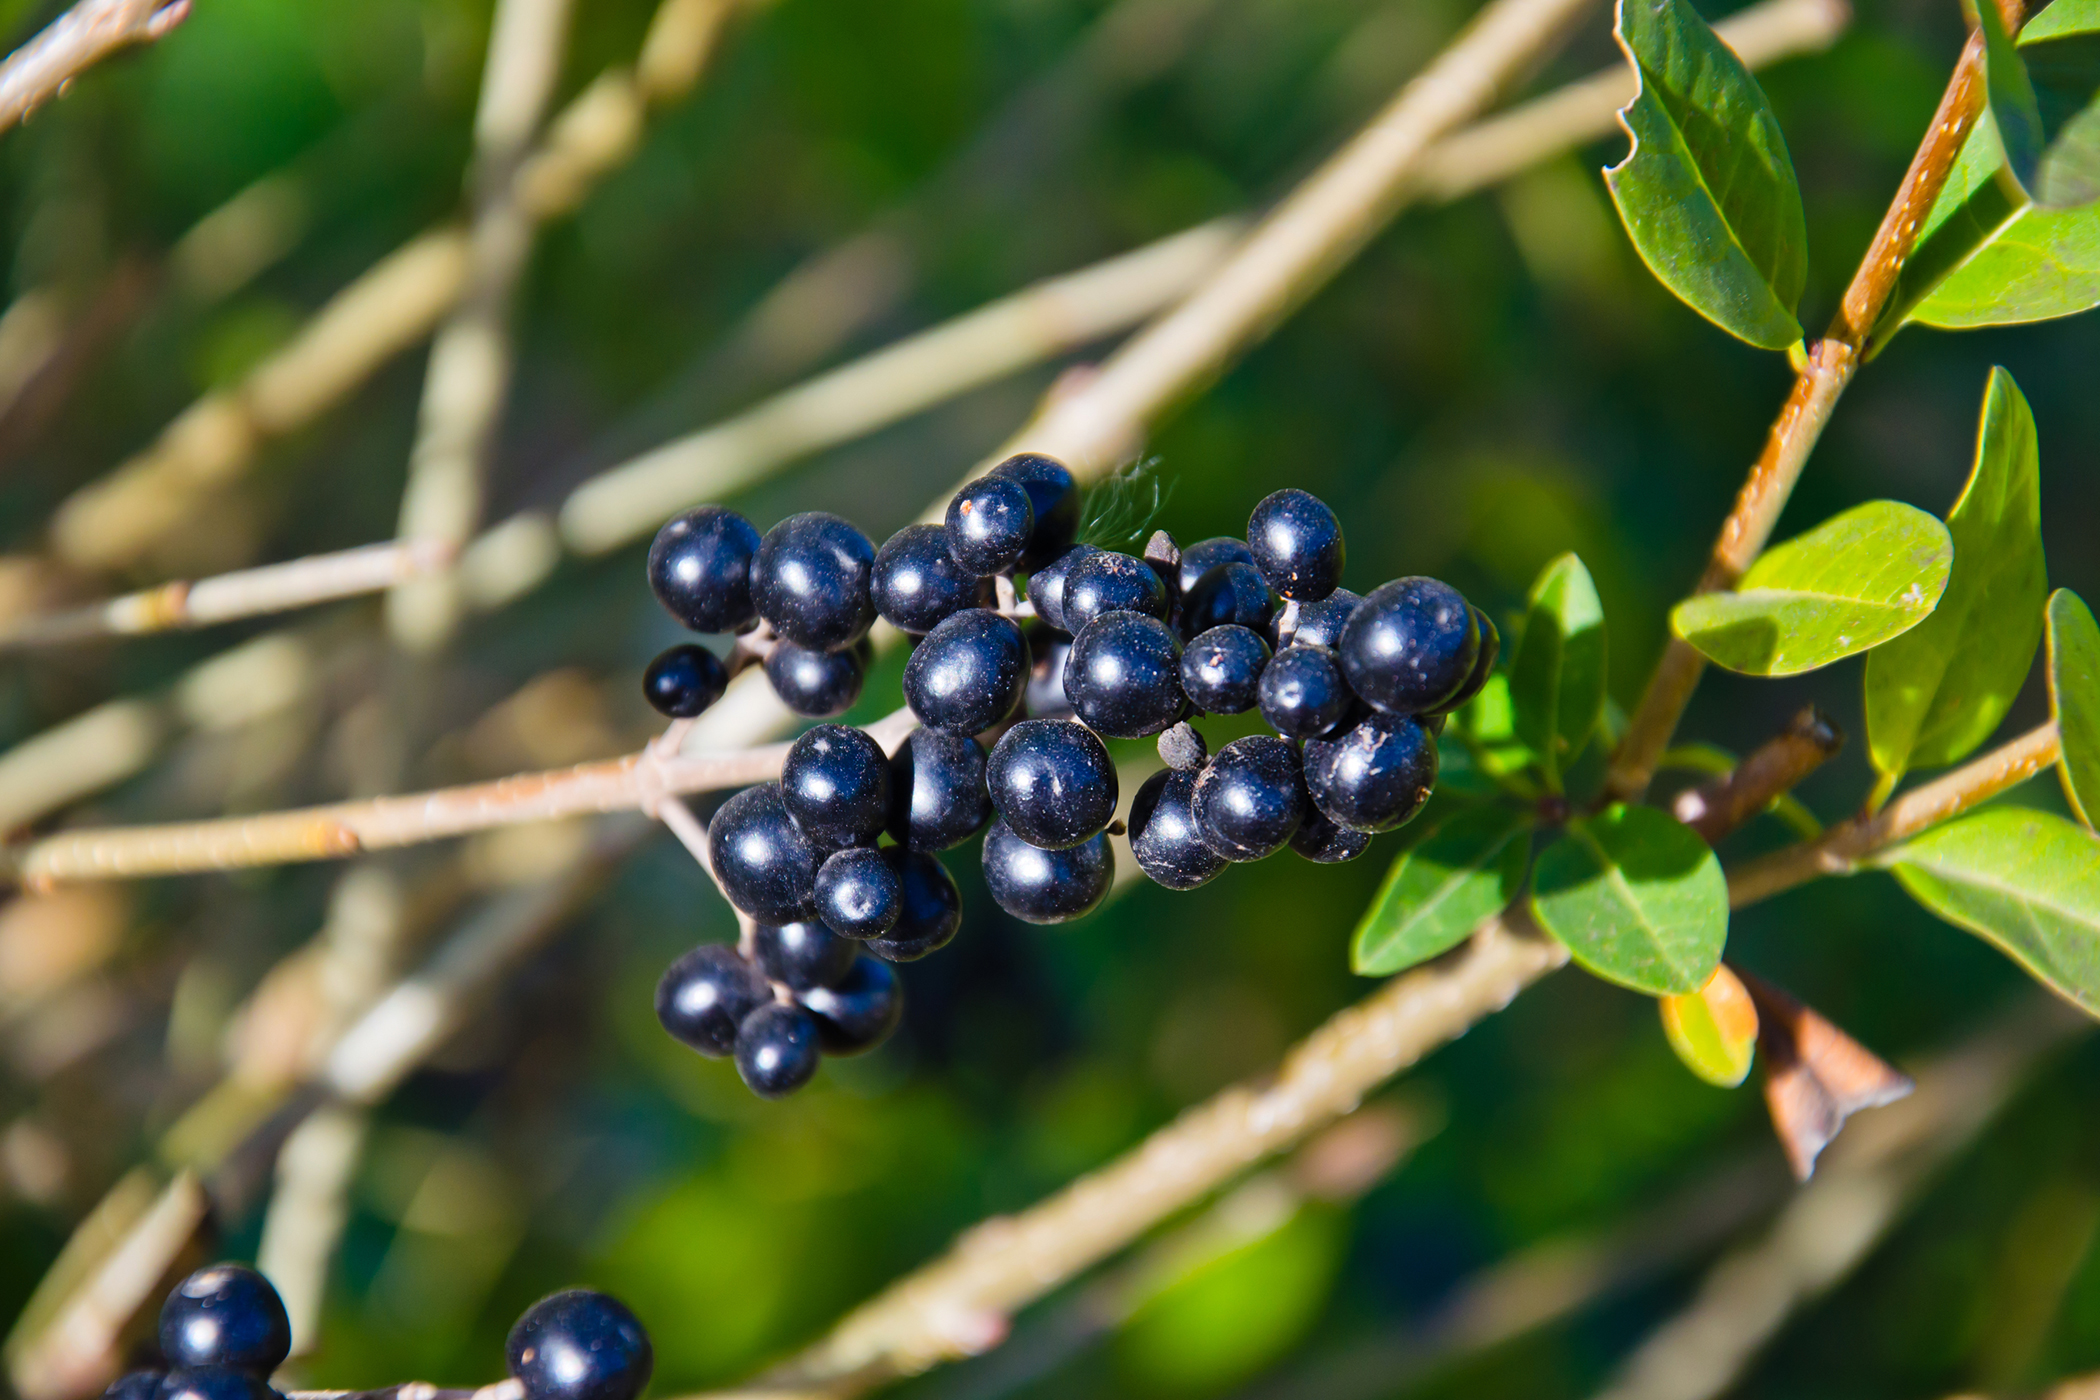 Common Privet Poisoning in Cats